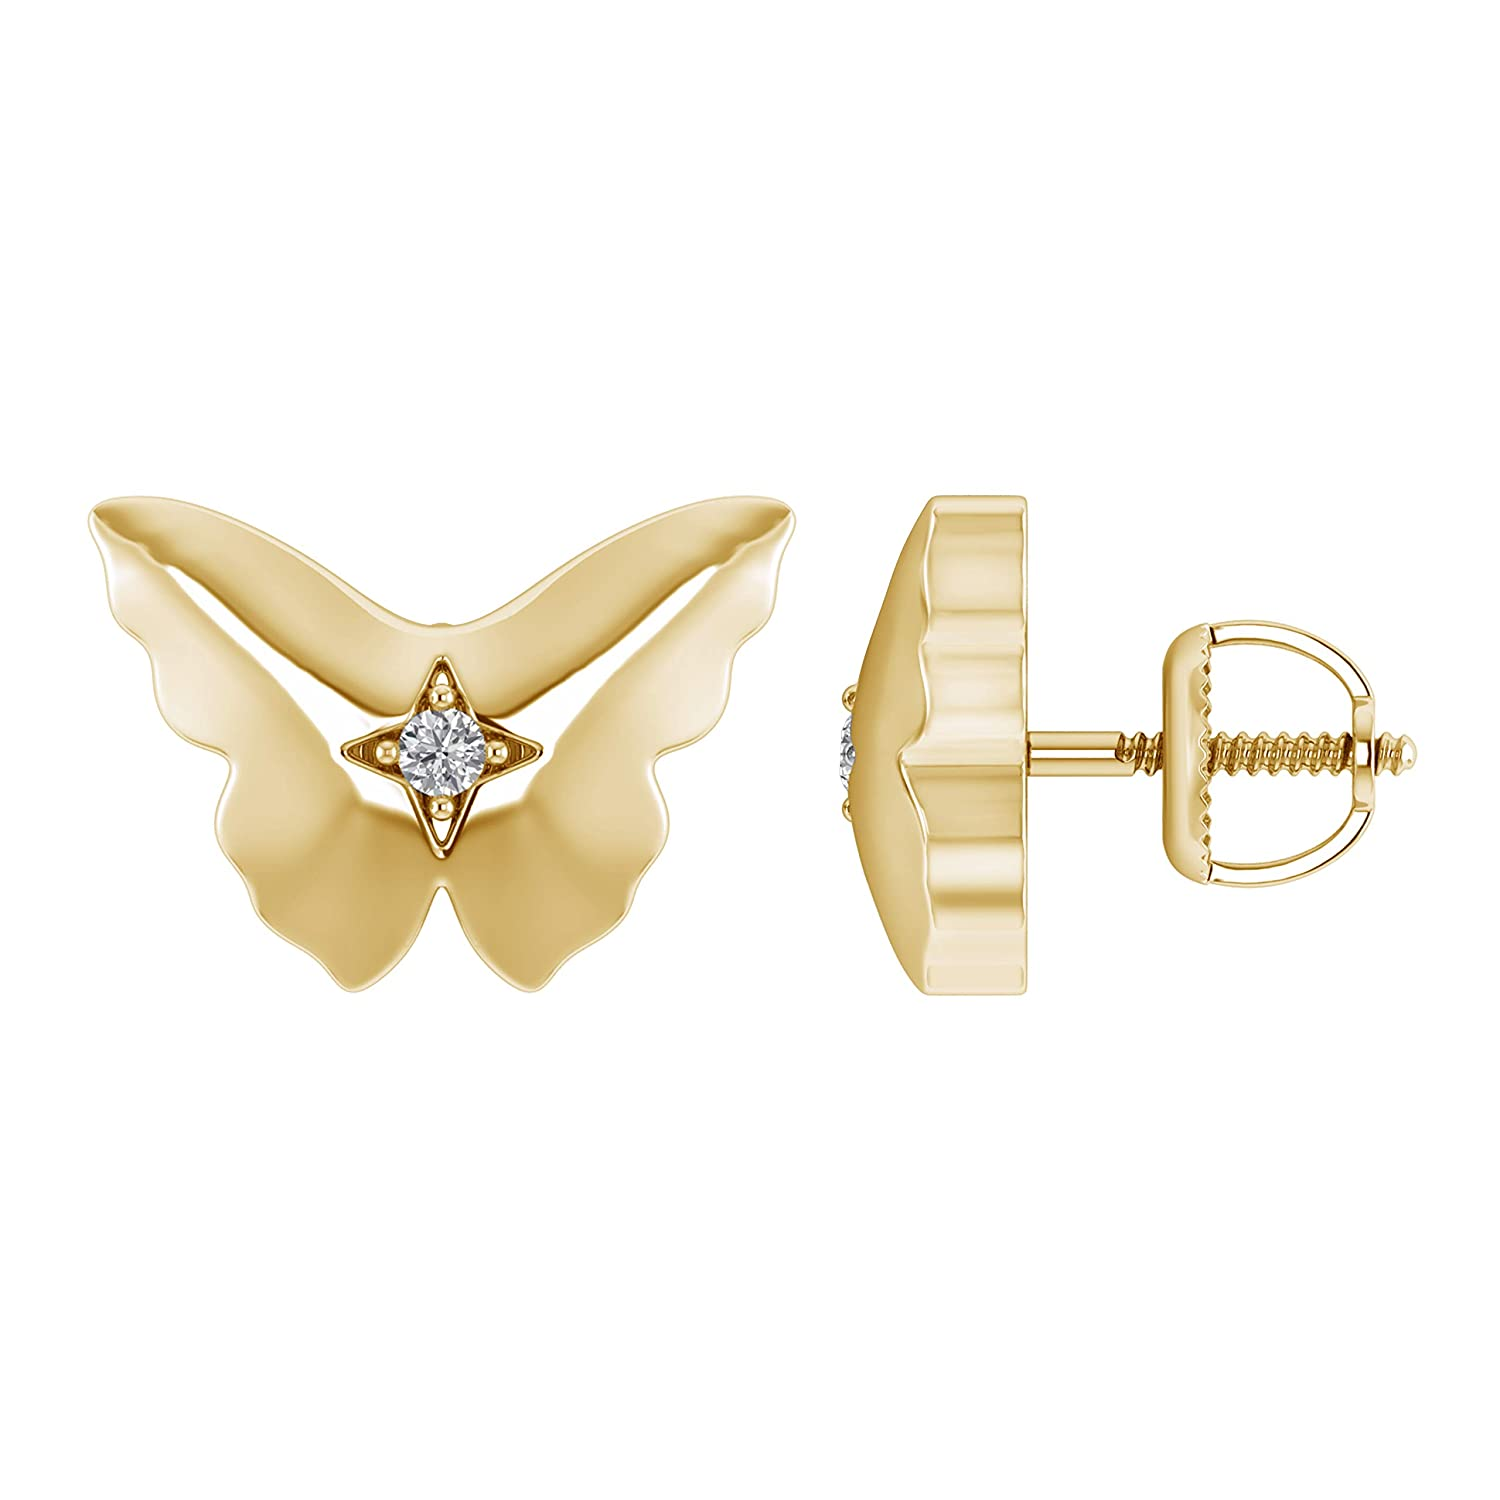 I1-I2//G-H 925 Sterling Silver Flying Butterfly Stud Earrings With Screw Back 0.05 Ct Natural Diamond